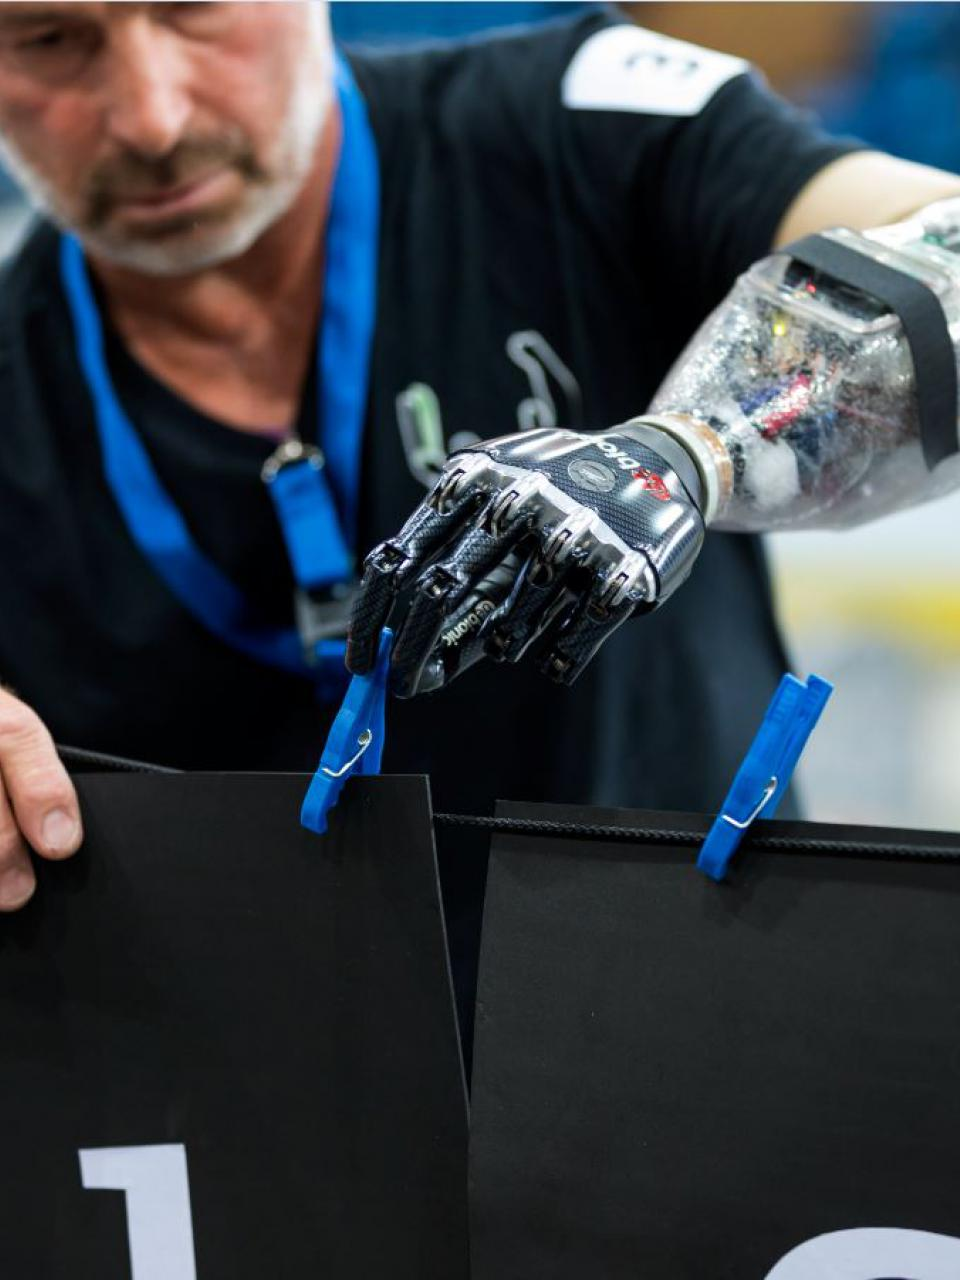 Motorised arm prostheses